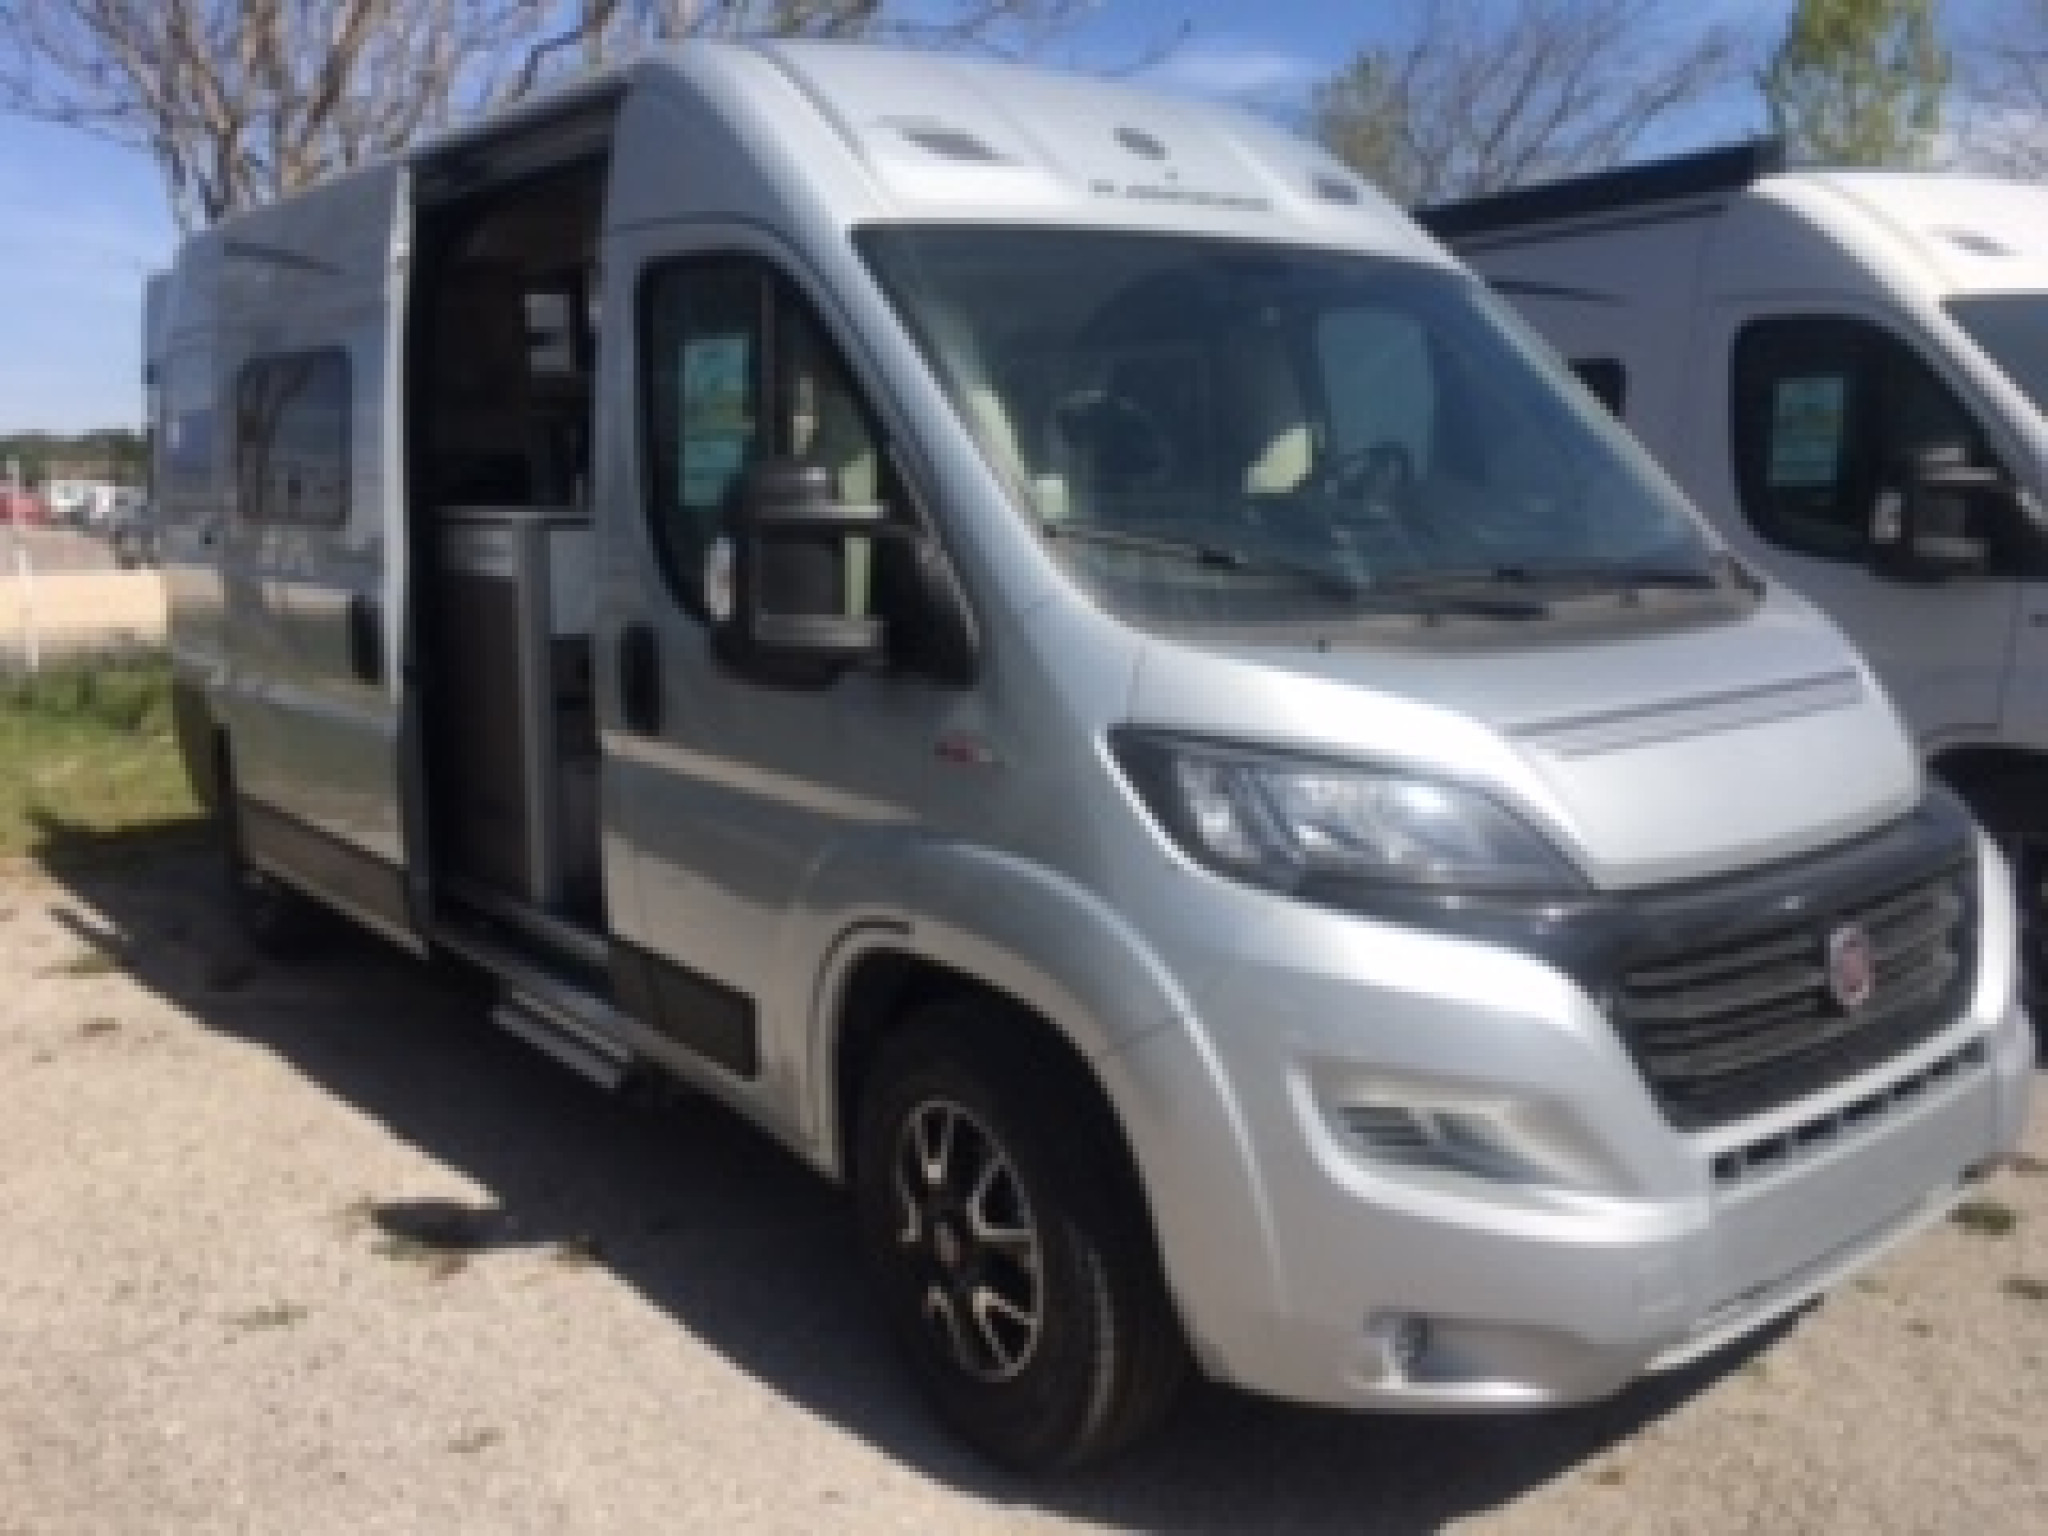 Camping-car RANDGER r 600 5 places couchages